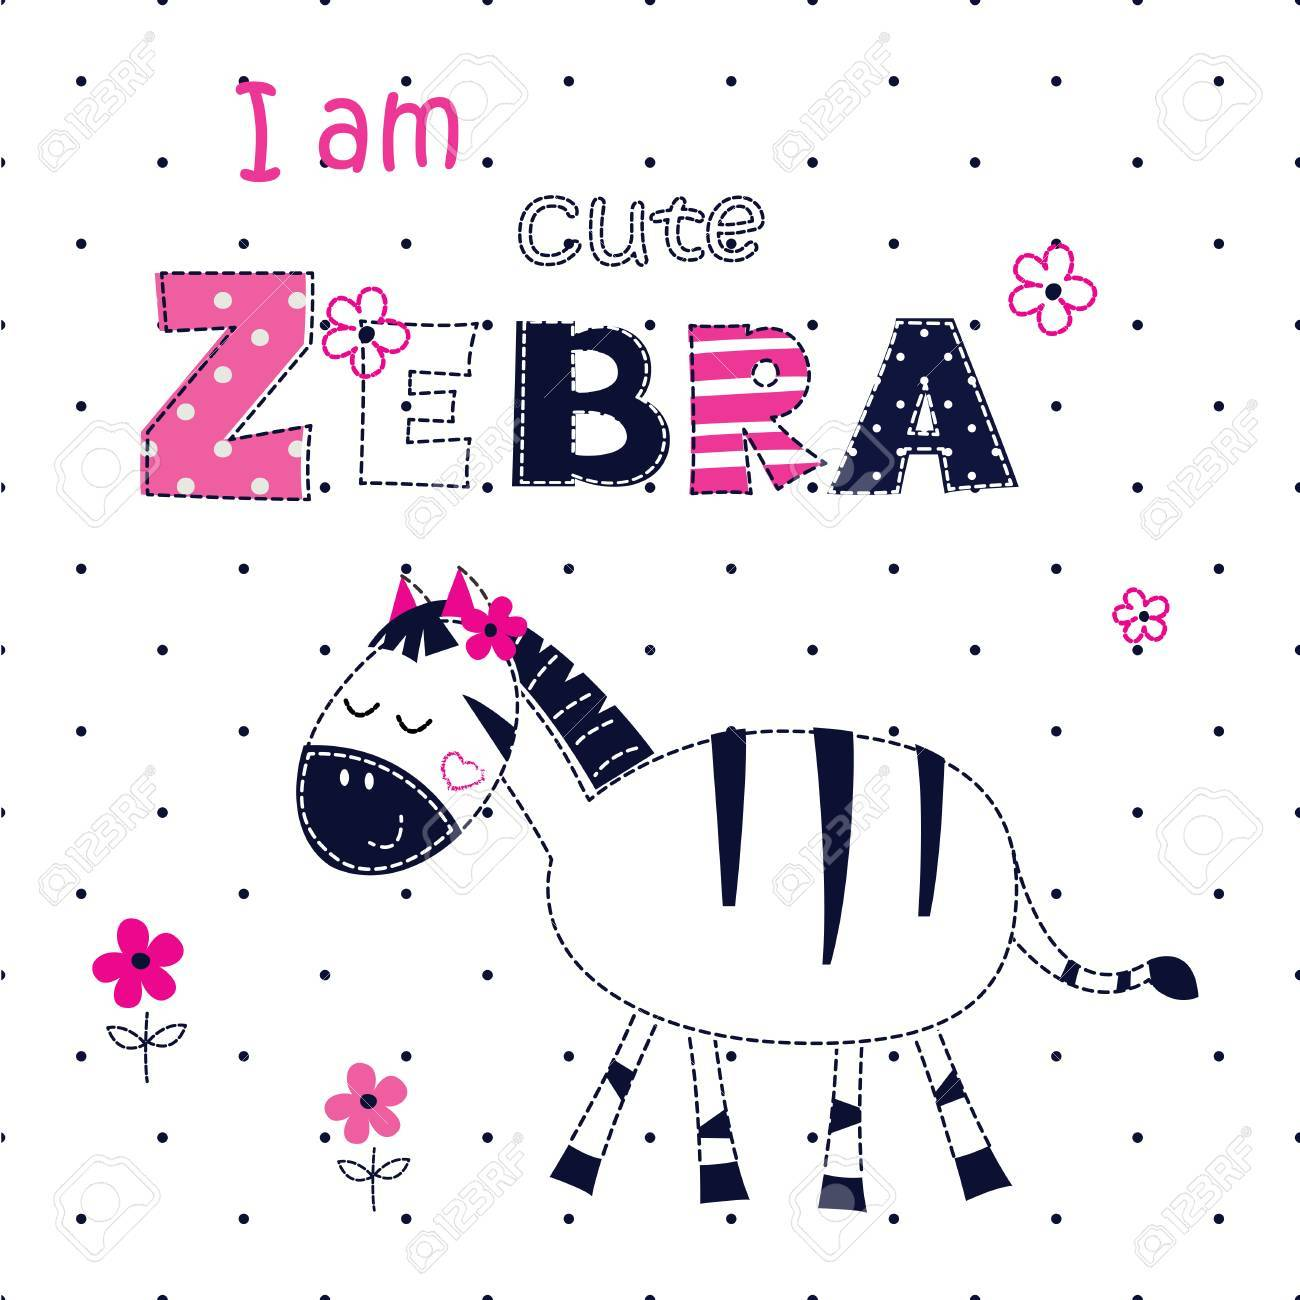 Zebra shirt design - Background With Cute Zebra With Floral Elements And Lettering For T Shirt Design Baby